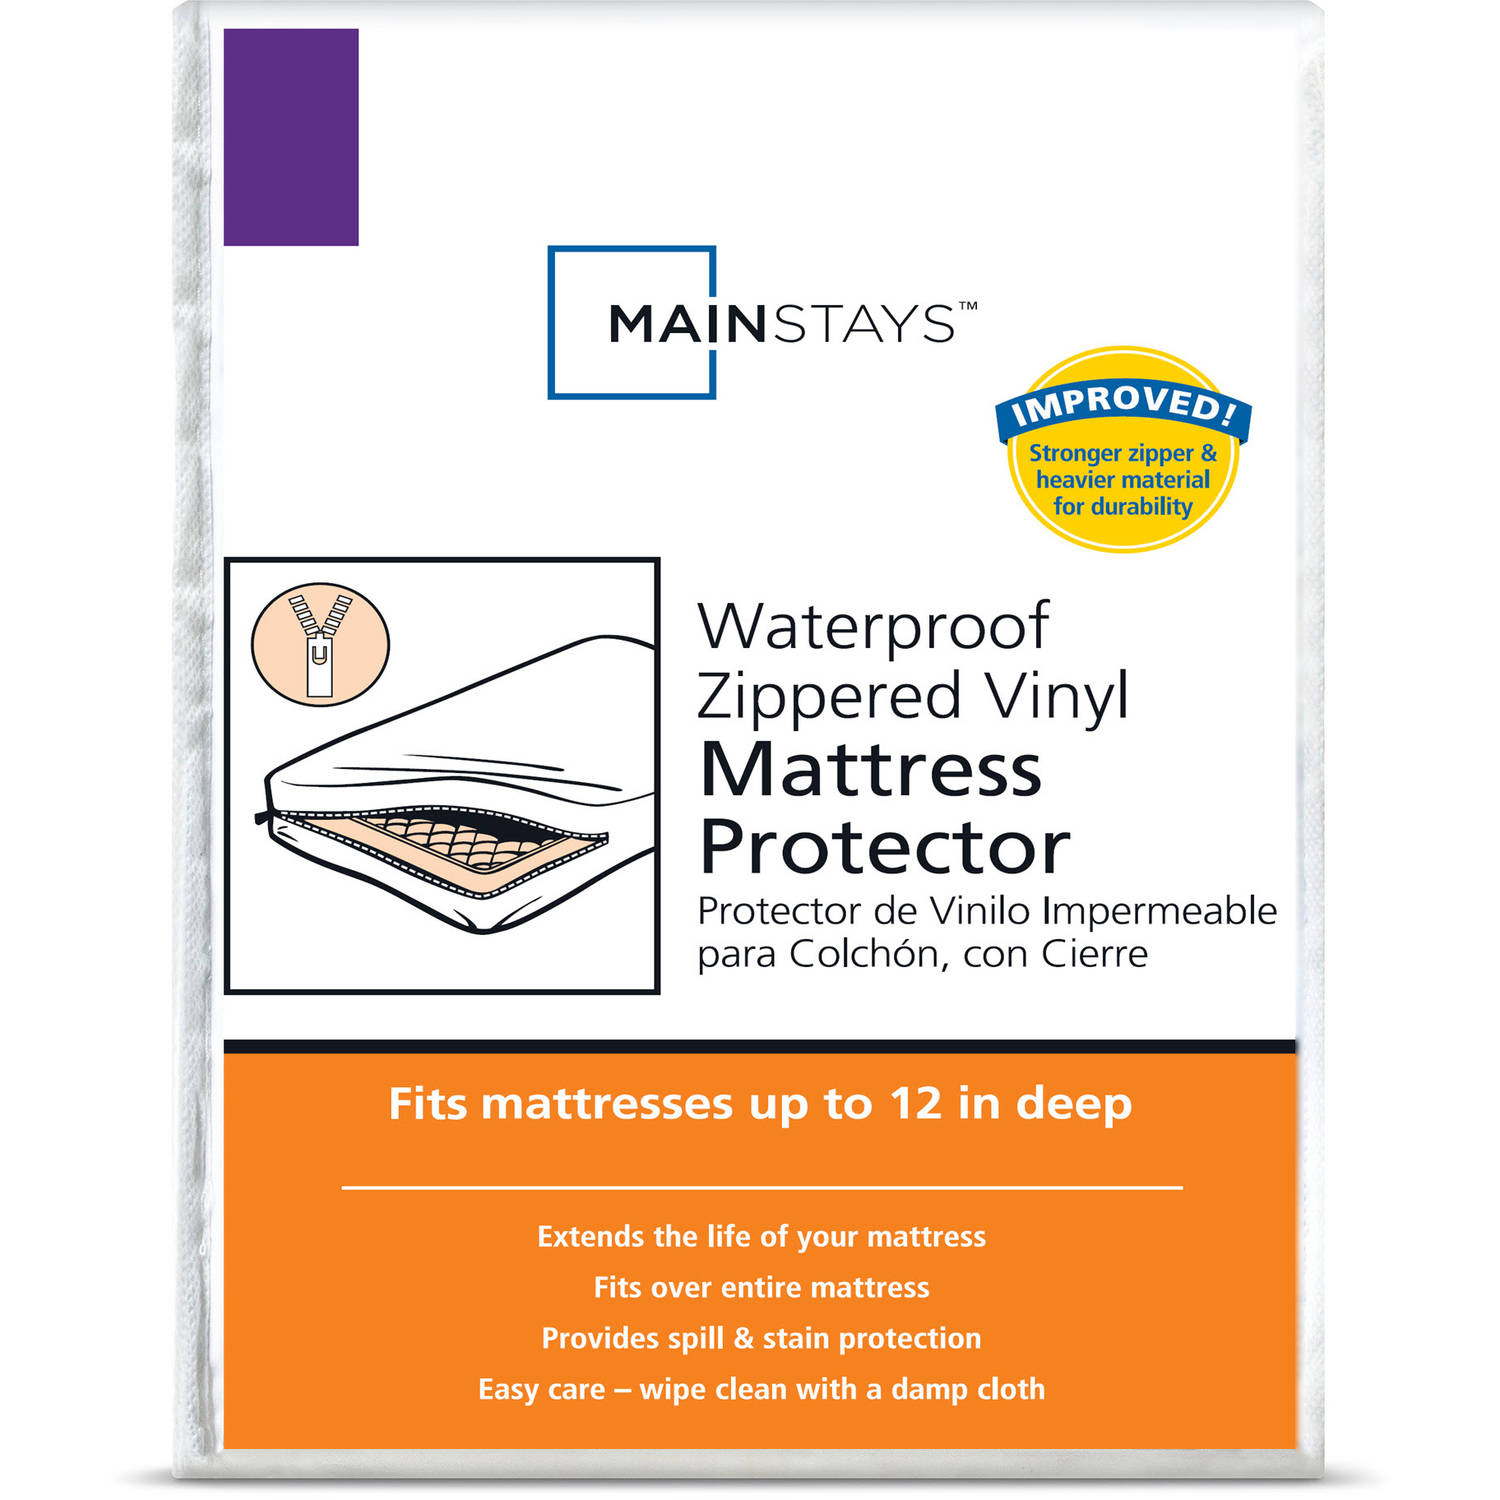 Mainstays Waterproof Zippered Vinyl Mattress Protector by American Textile Company